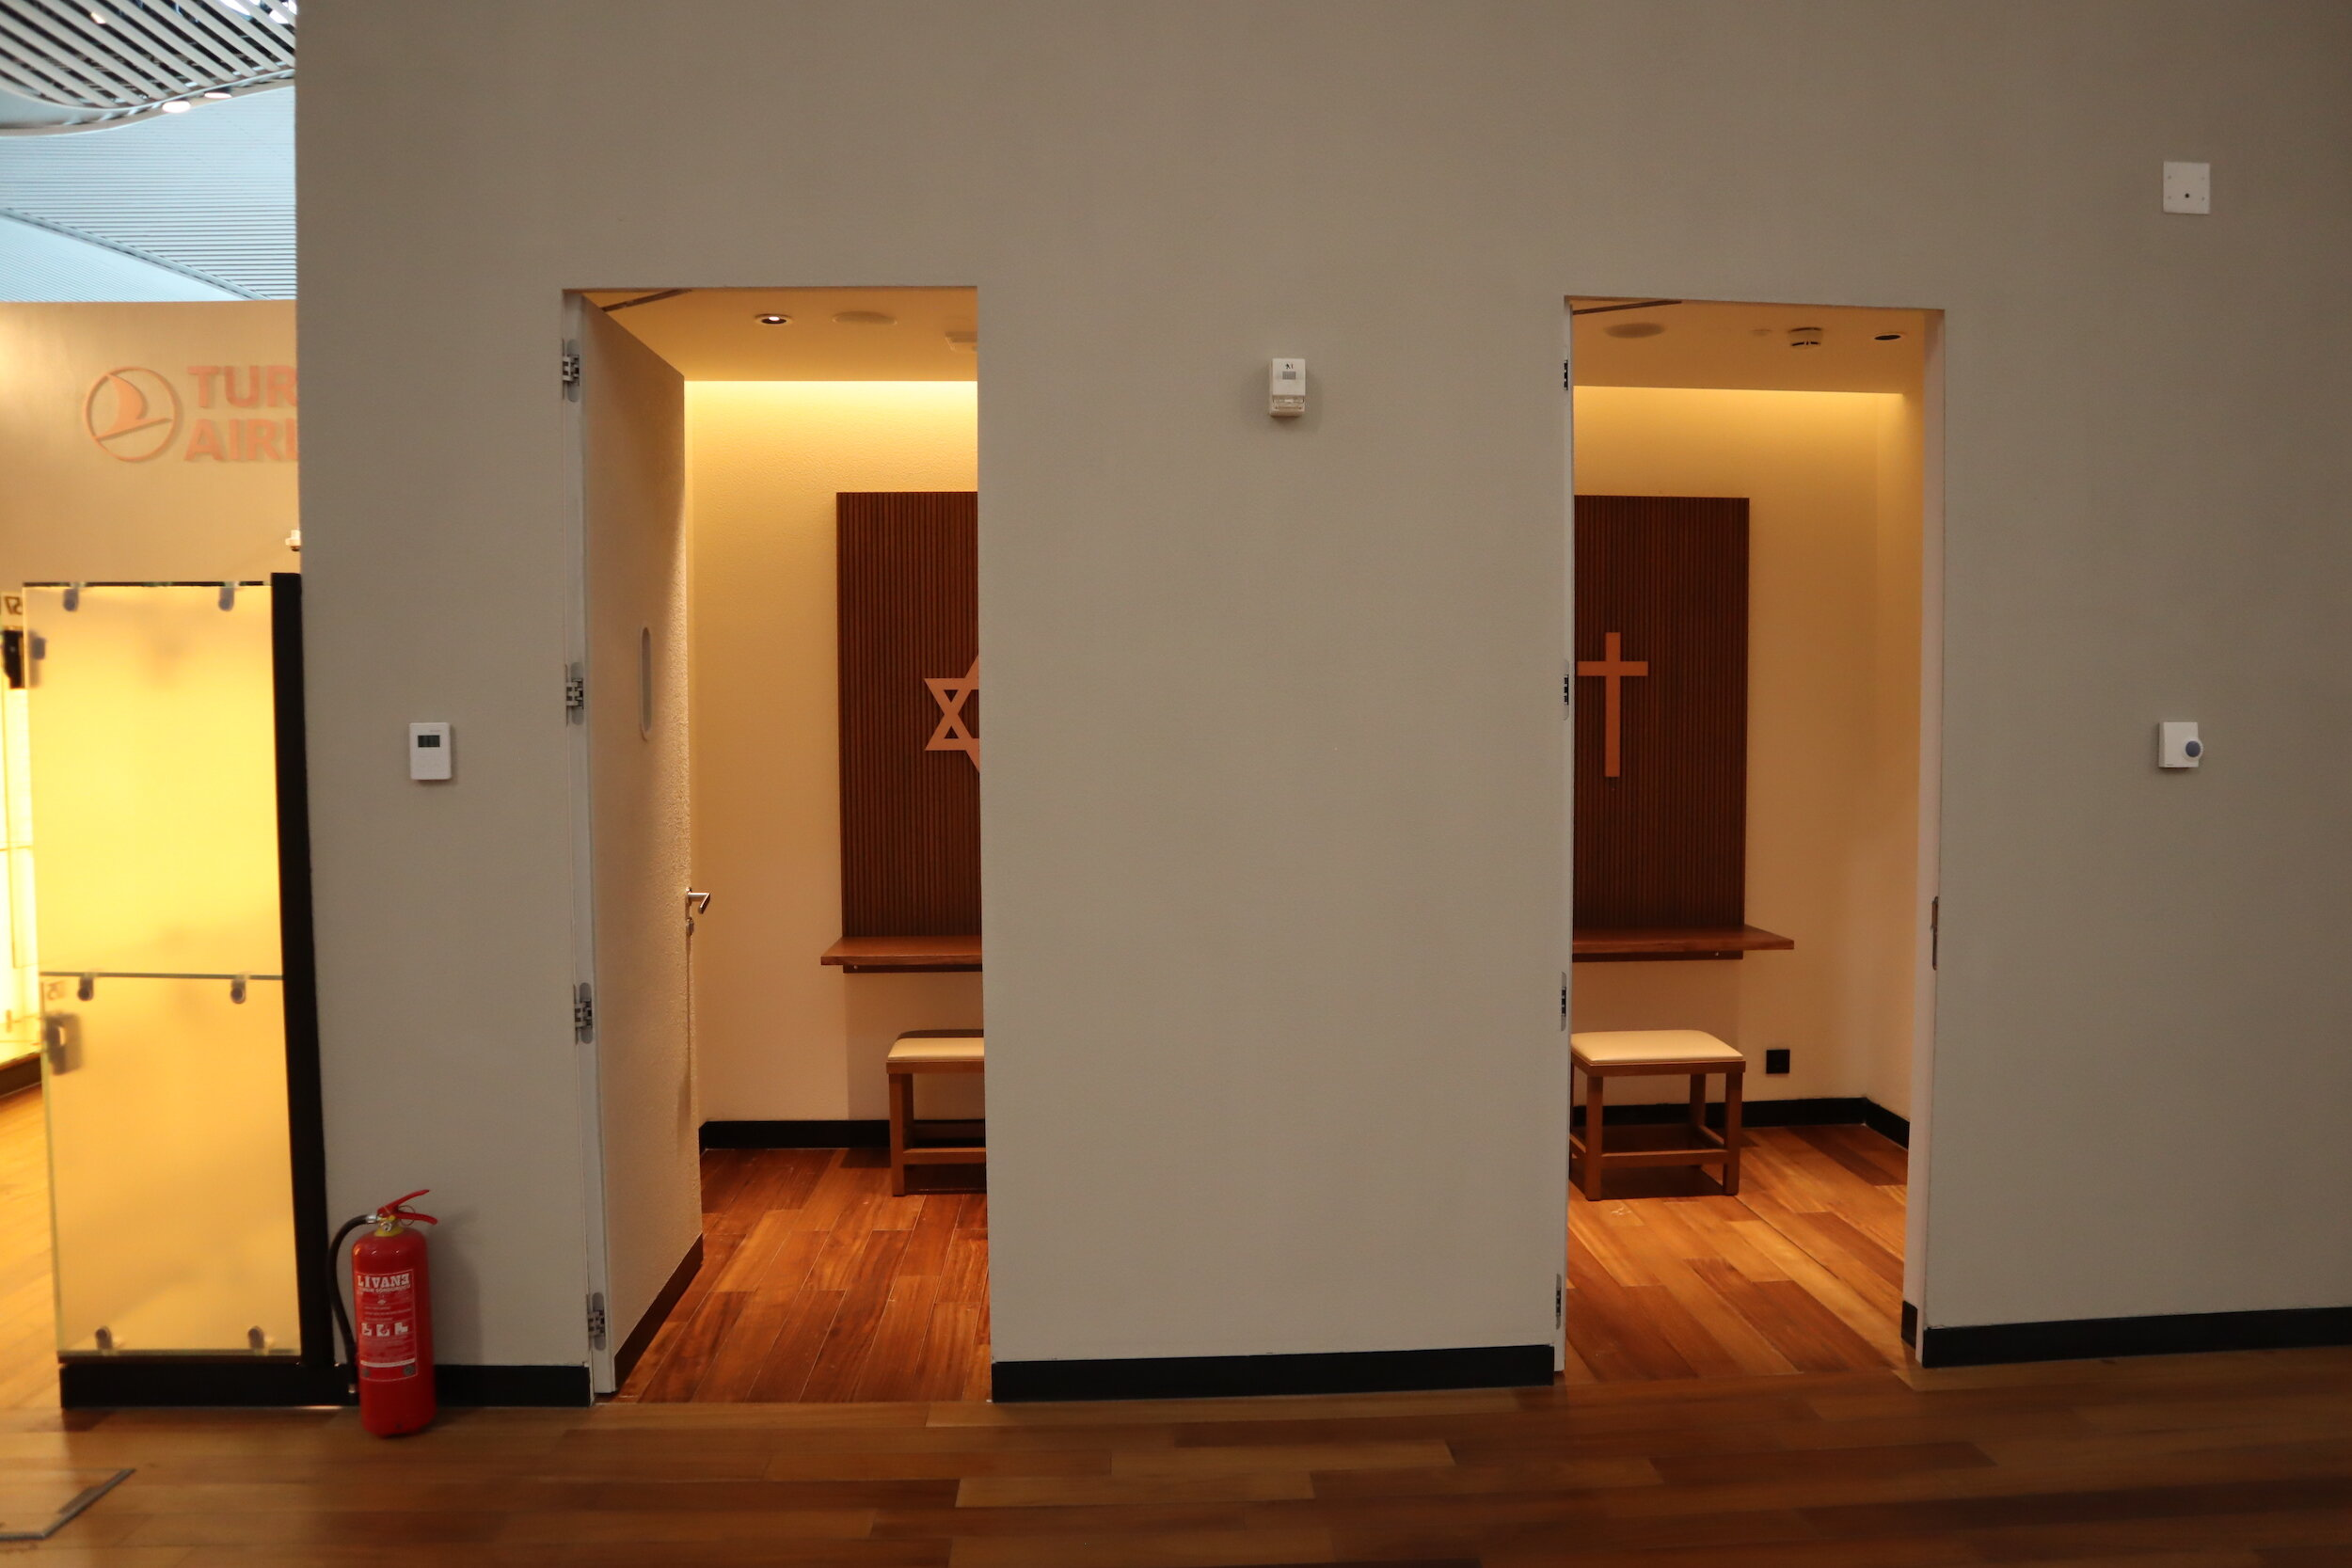 Turkish Airlines Business Lounge Istanbul – Prayer rooms